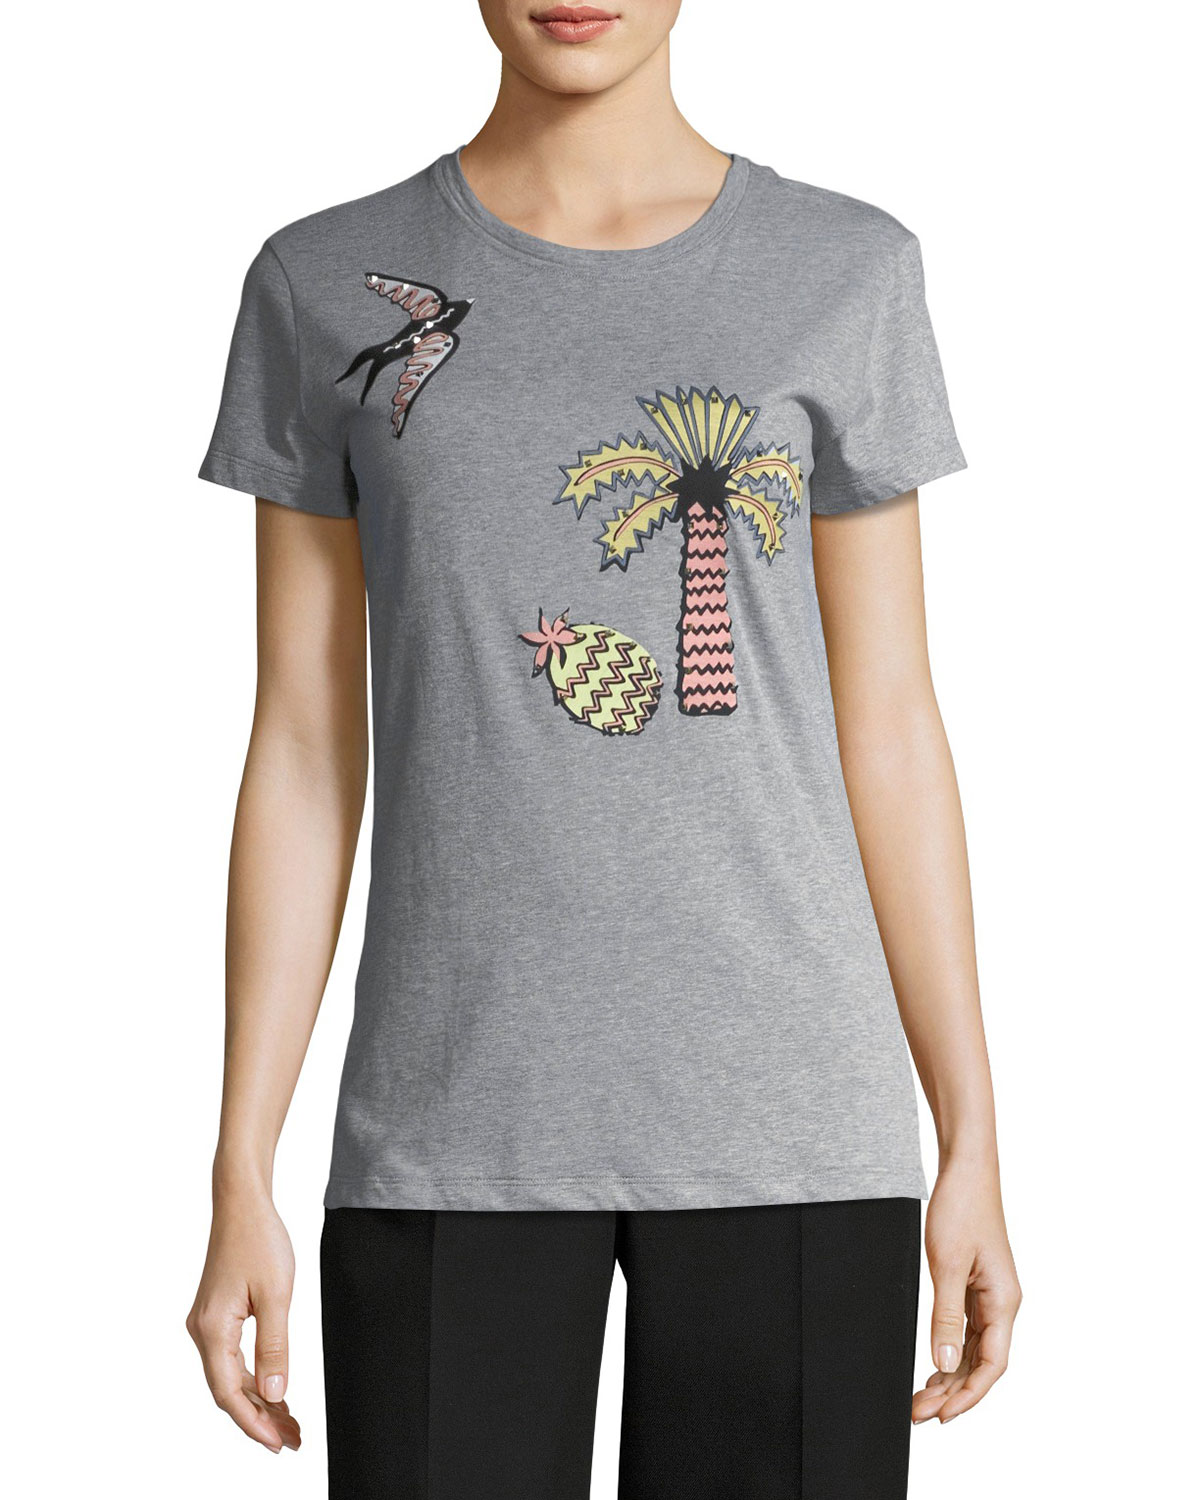 Garden of Earthly Delights Tropical T-Shirt